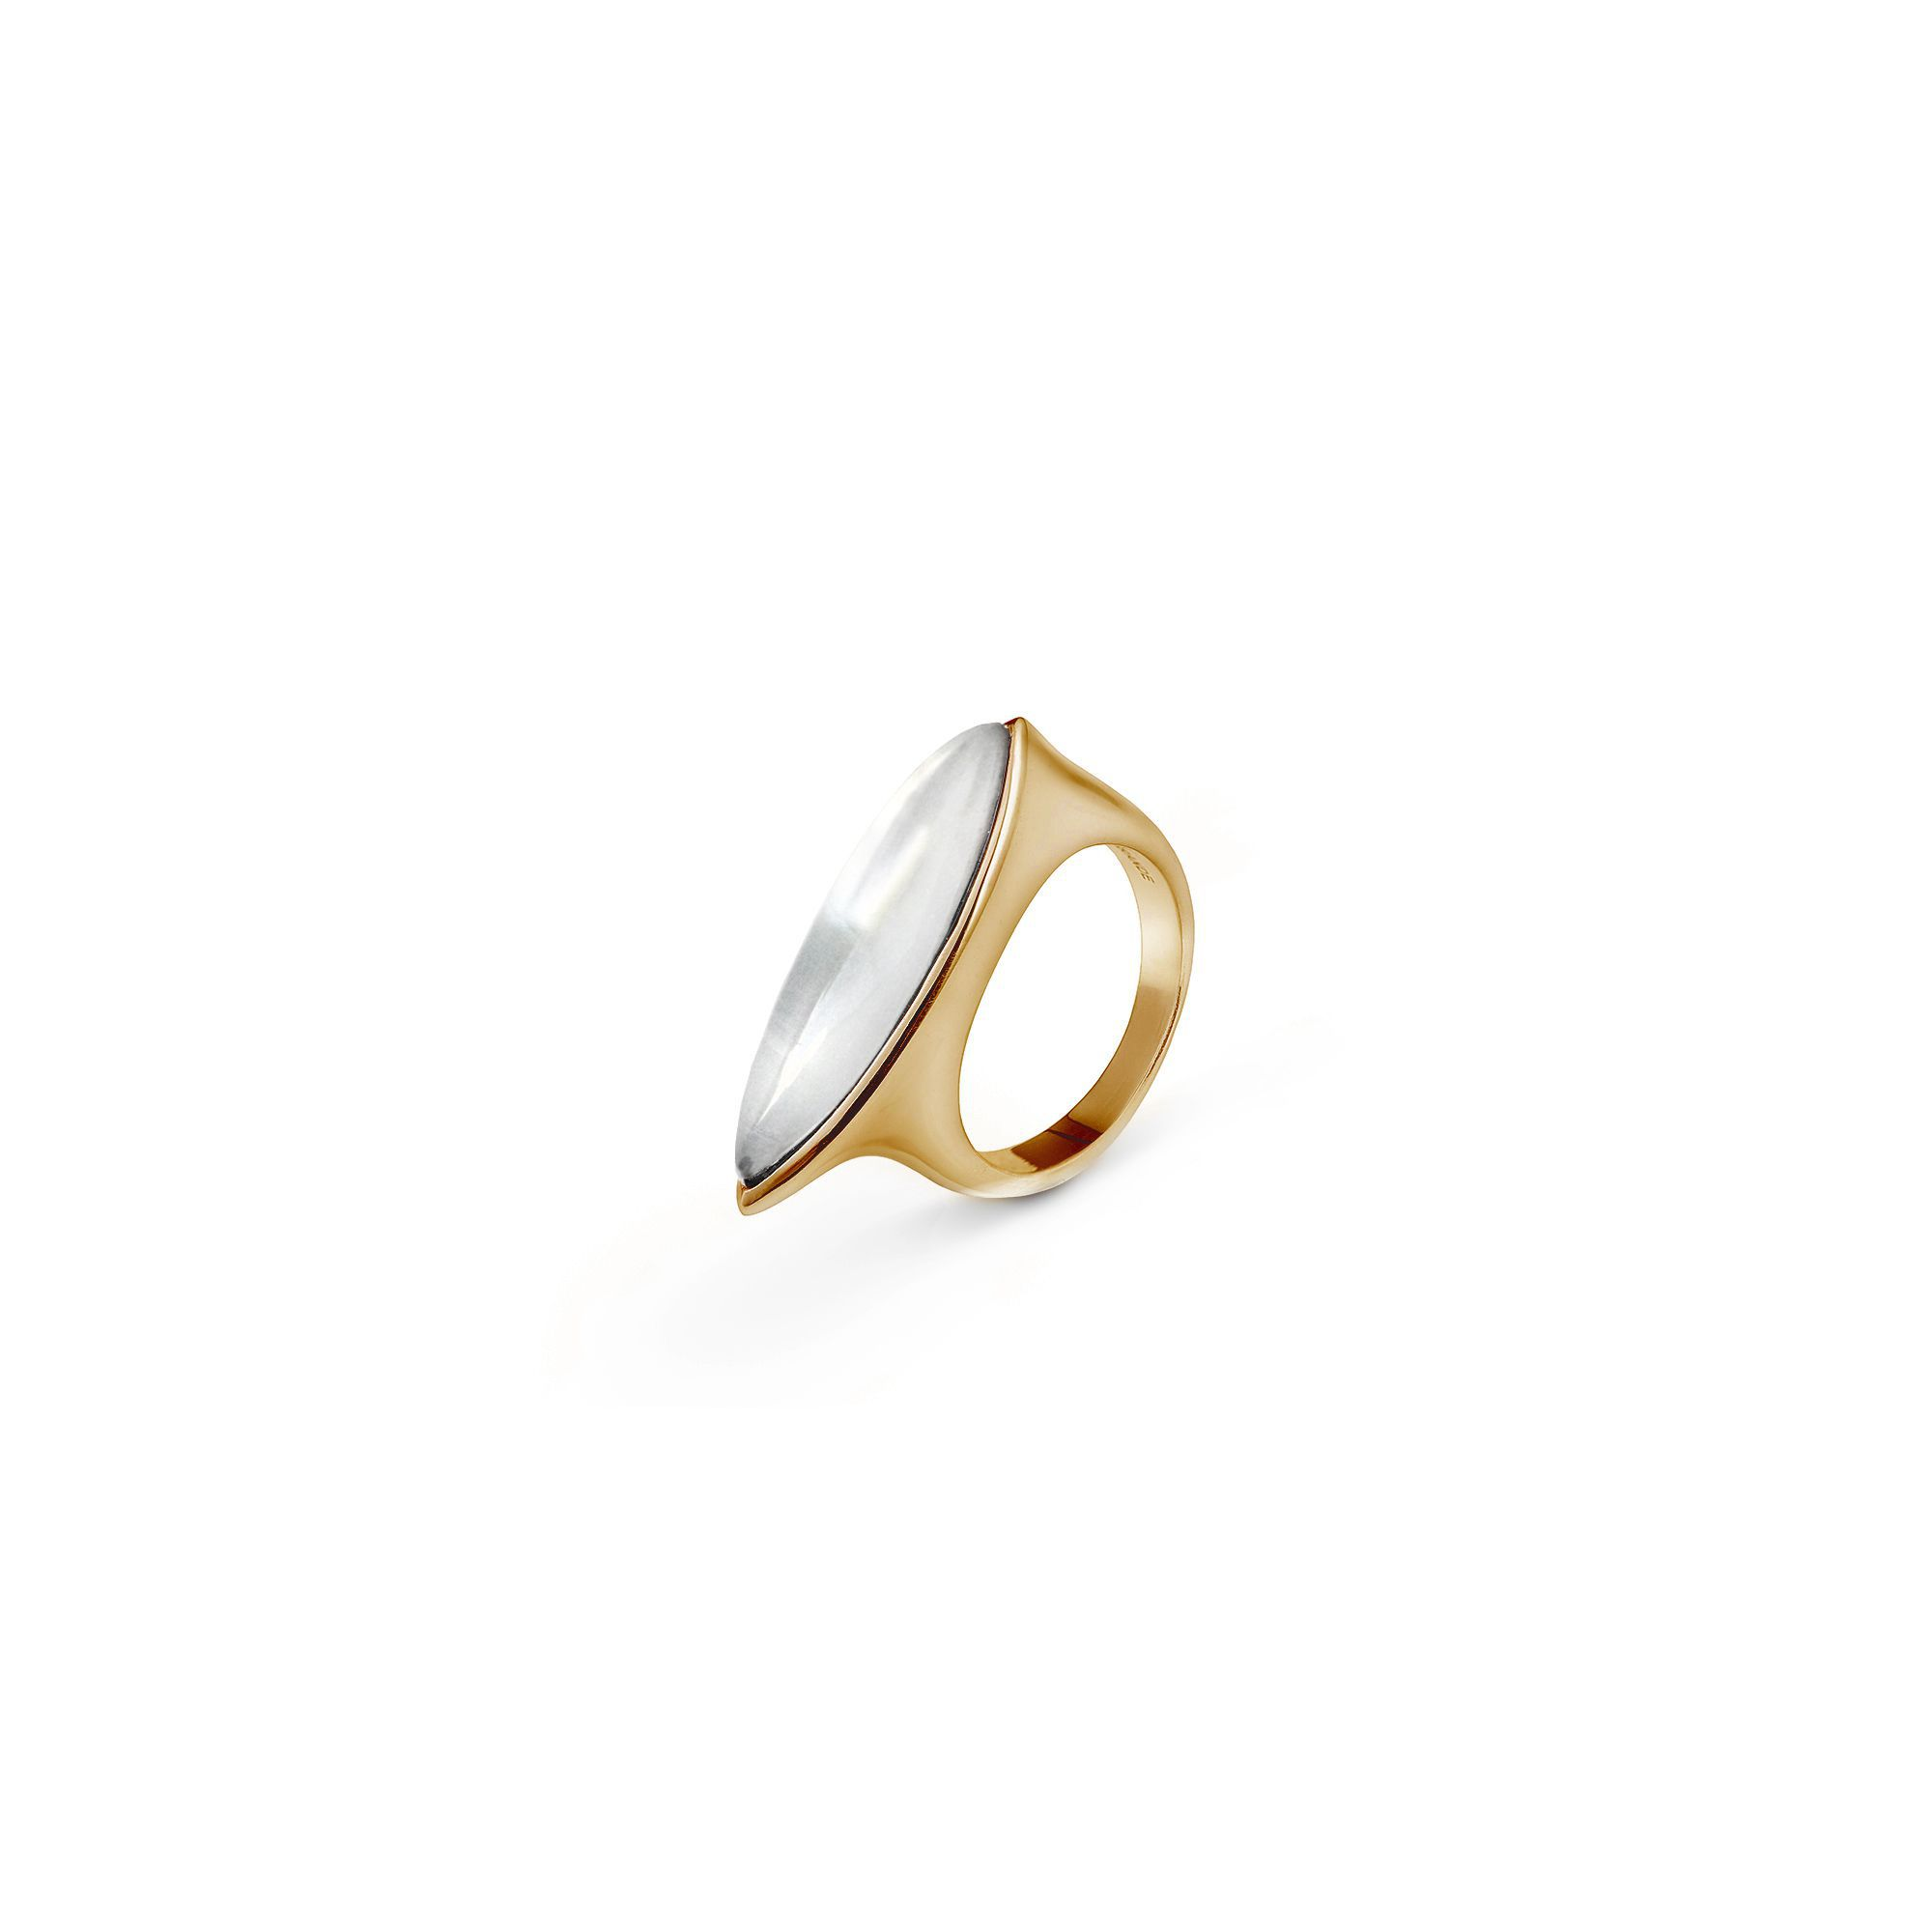 Mother-or-pearl 'Navetta' ring Bronze ring with stone